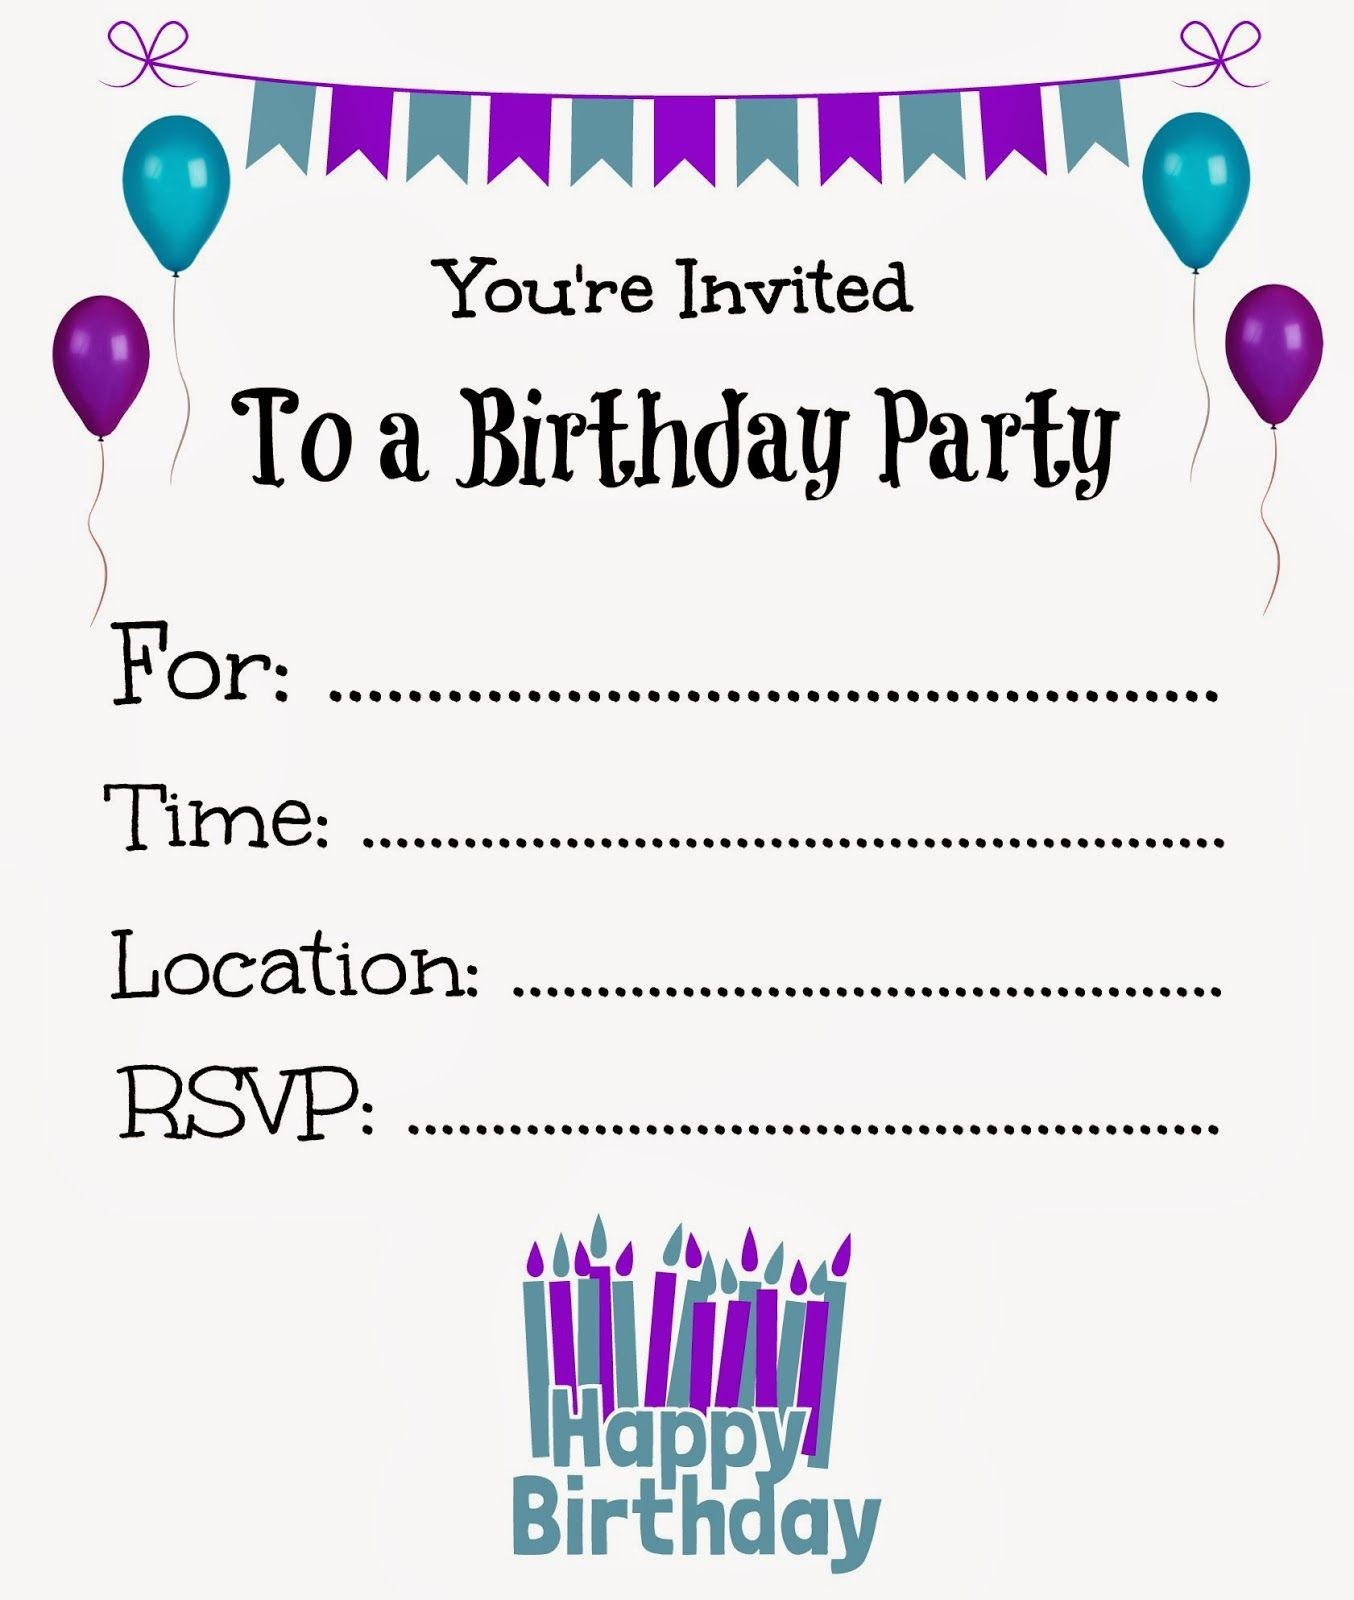 Free Printable Birthday Invitations For Kids #freeprintables - Free Printable Glow In The Dark Birthday Party Invitations